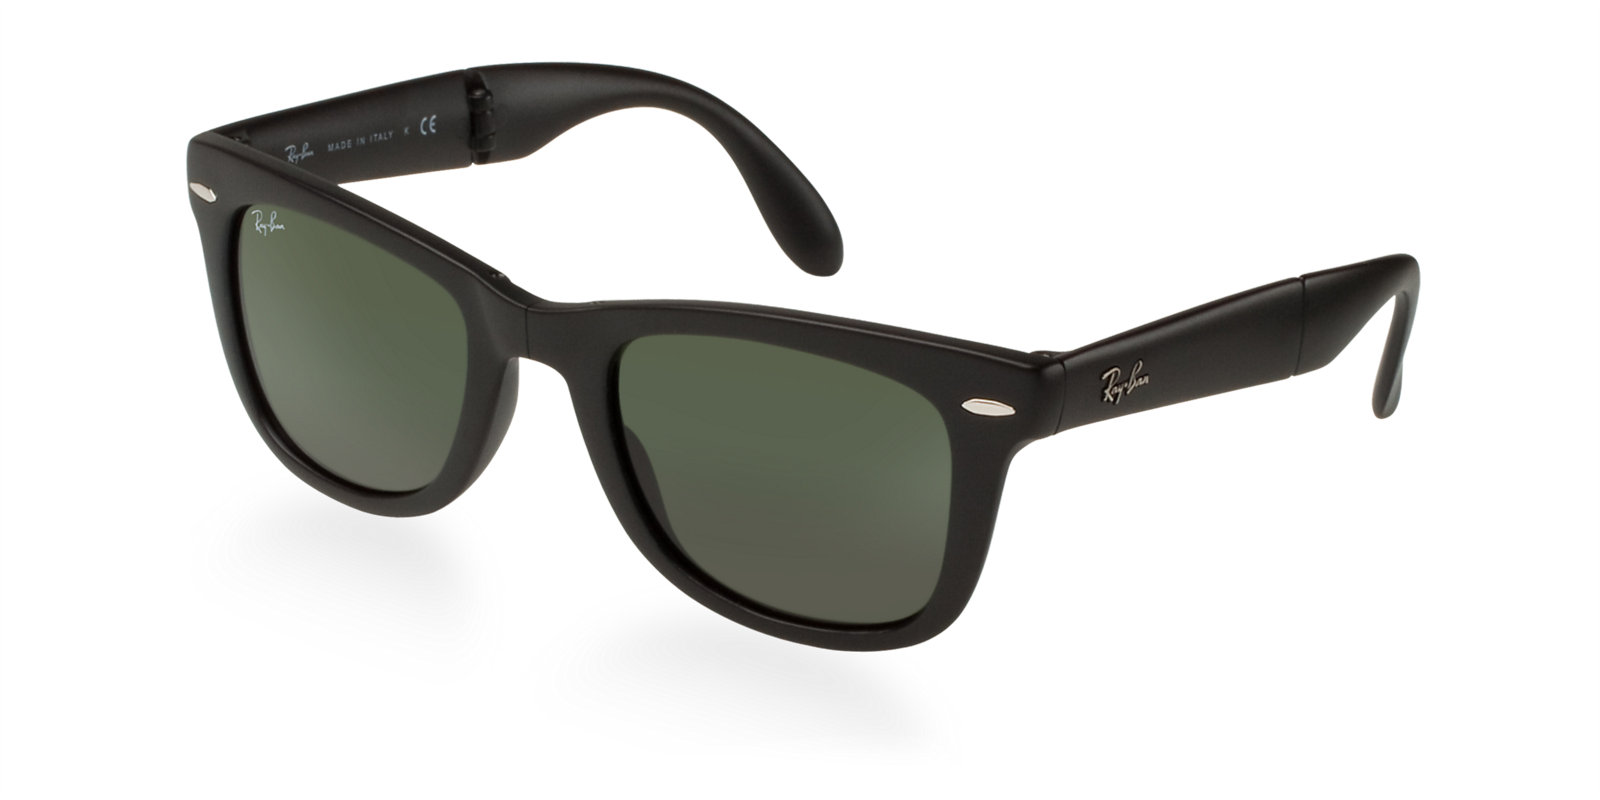 d492c8d32 Previous; Next. Previous; Next. RAY-BAN RB4105 601S MATTE BLACK FOLDING  WAYFARER SUNGLASSES